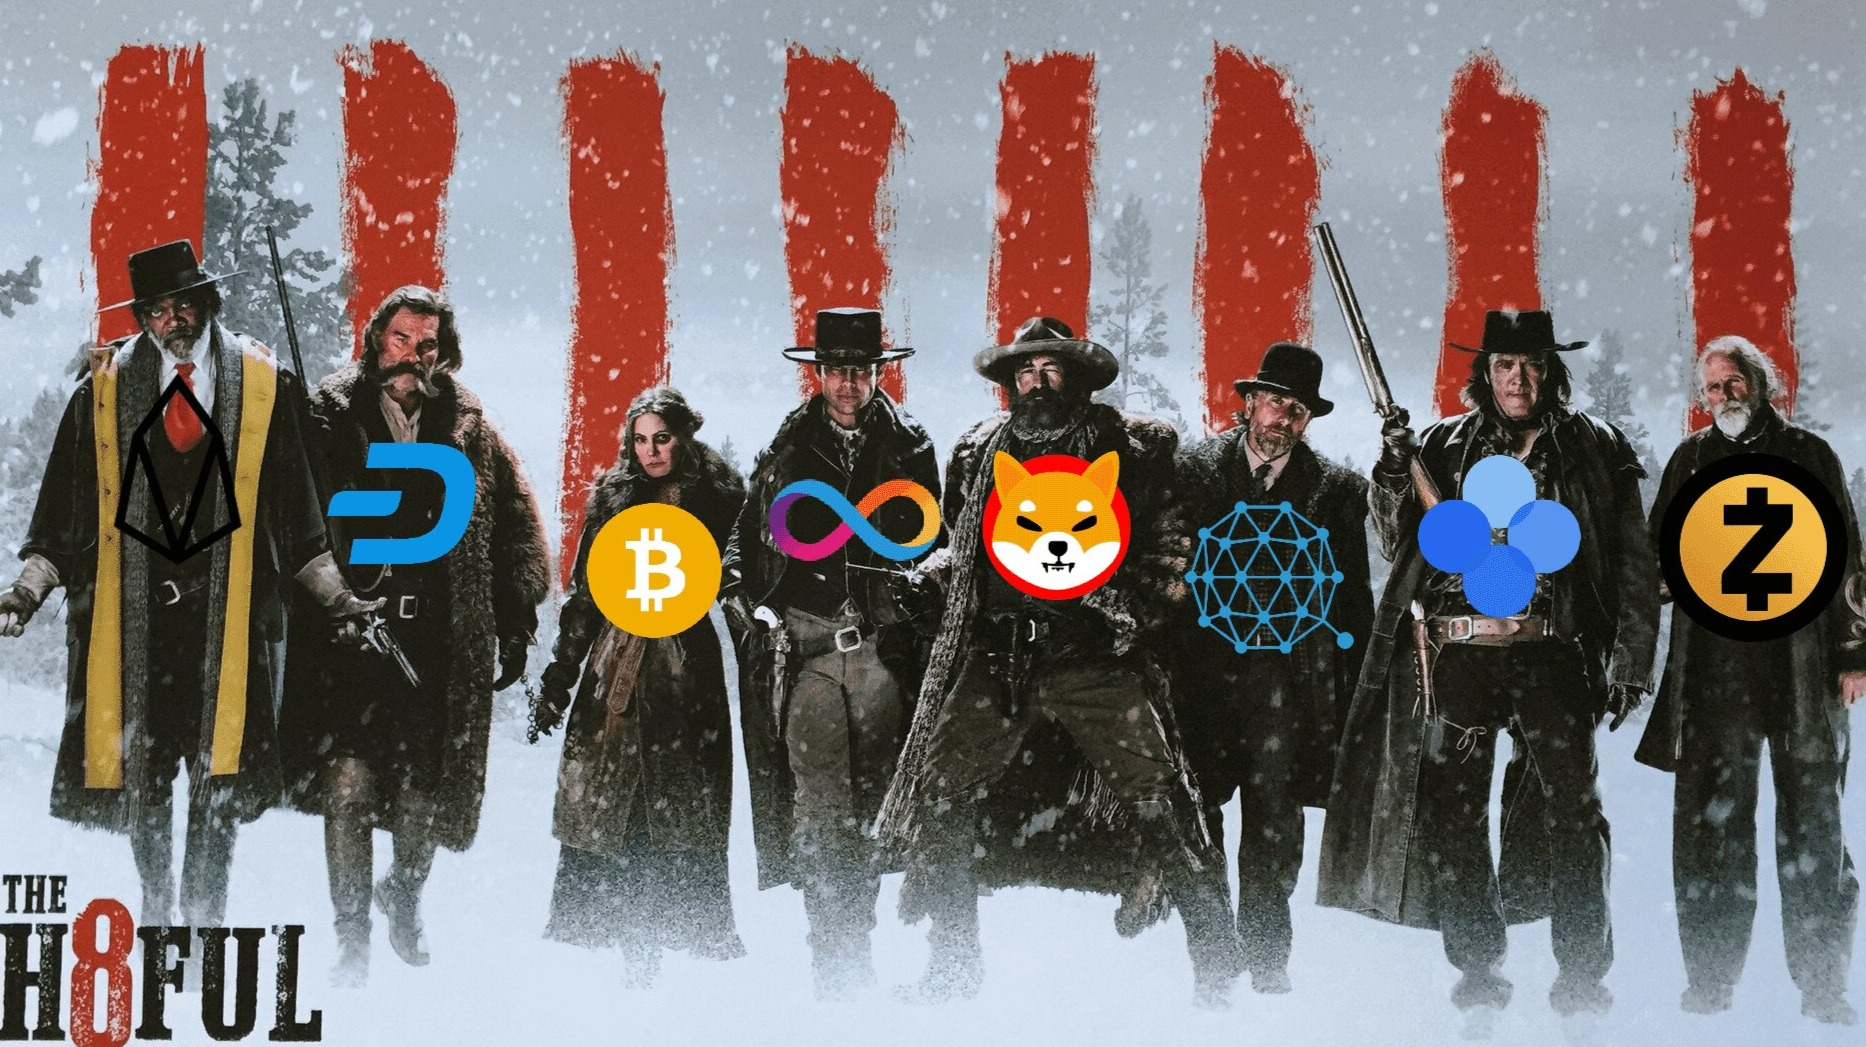 The Hateful Eight: SHIB, ICP, EOS, ZEC, BSV, DASH, QTUM, OKB – Biggest Losers from May 14th to May 21st